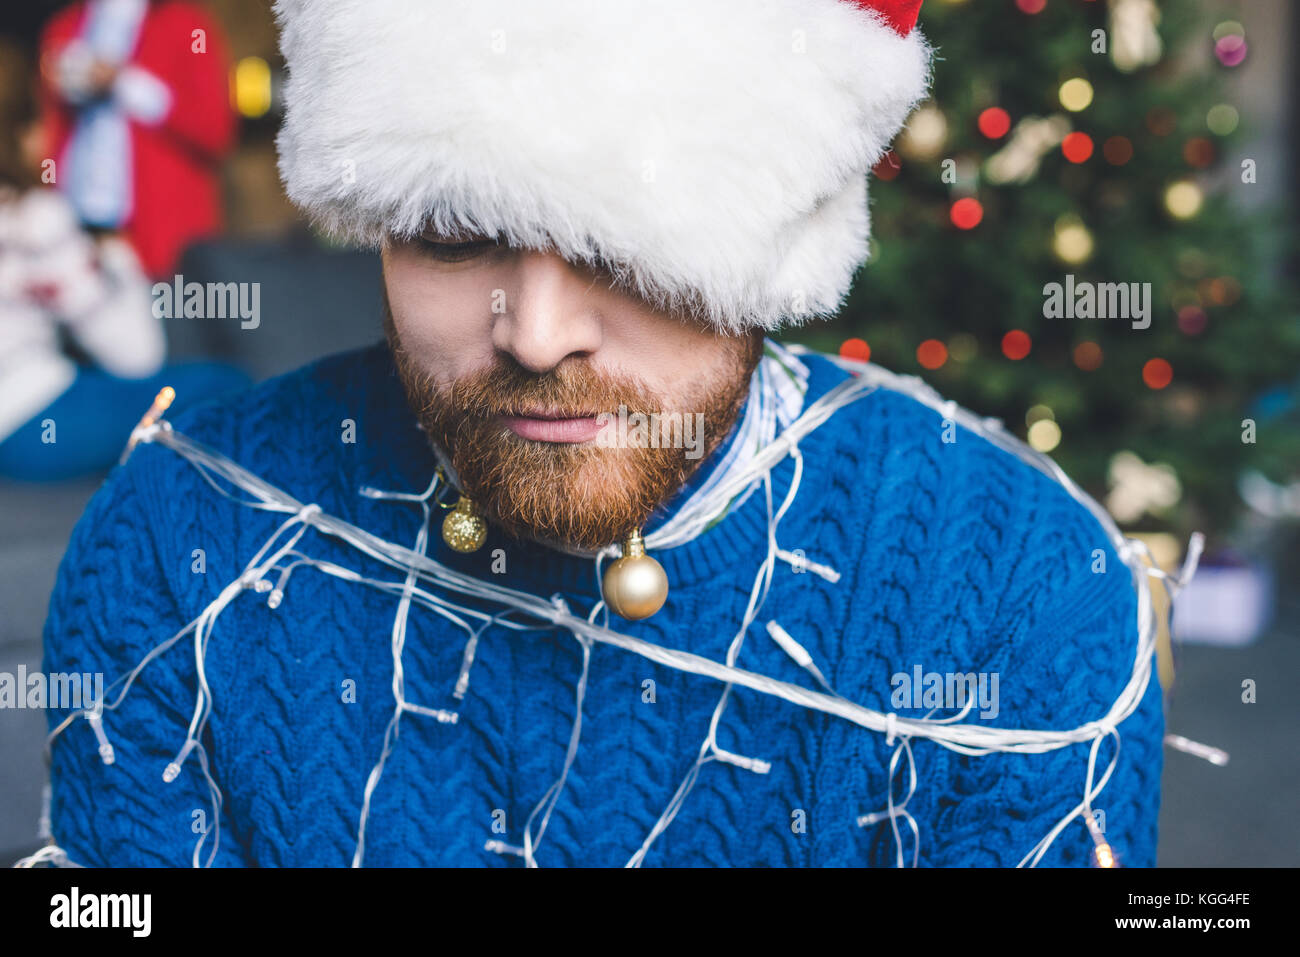 man tied up with christmas garland Stock Photo